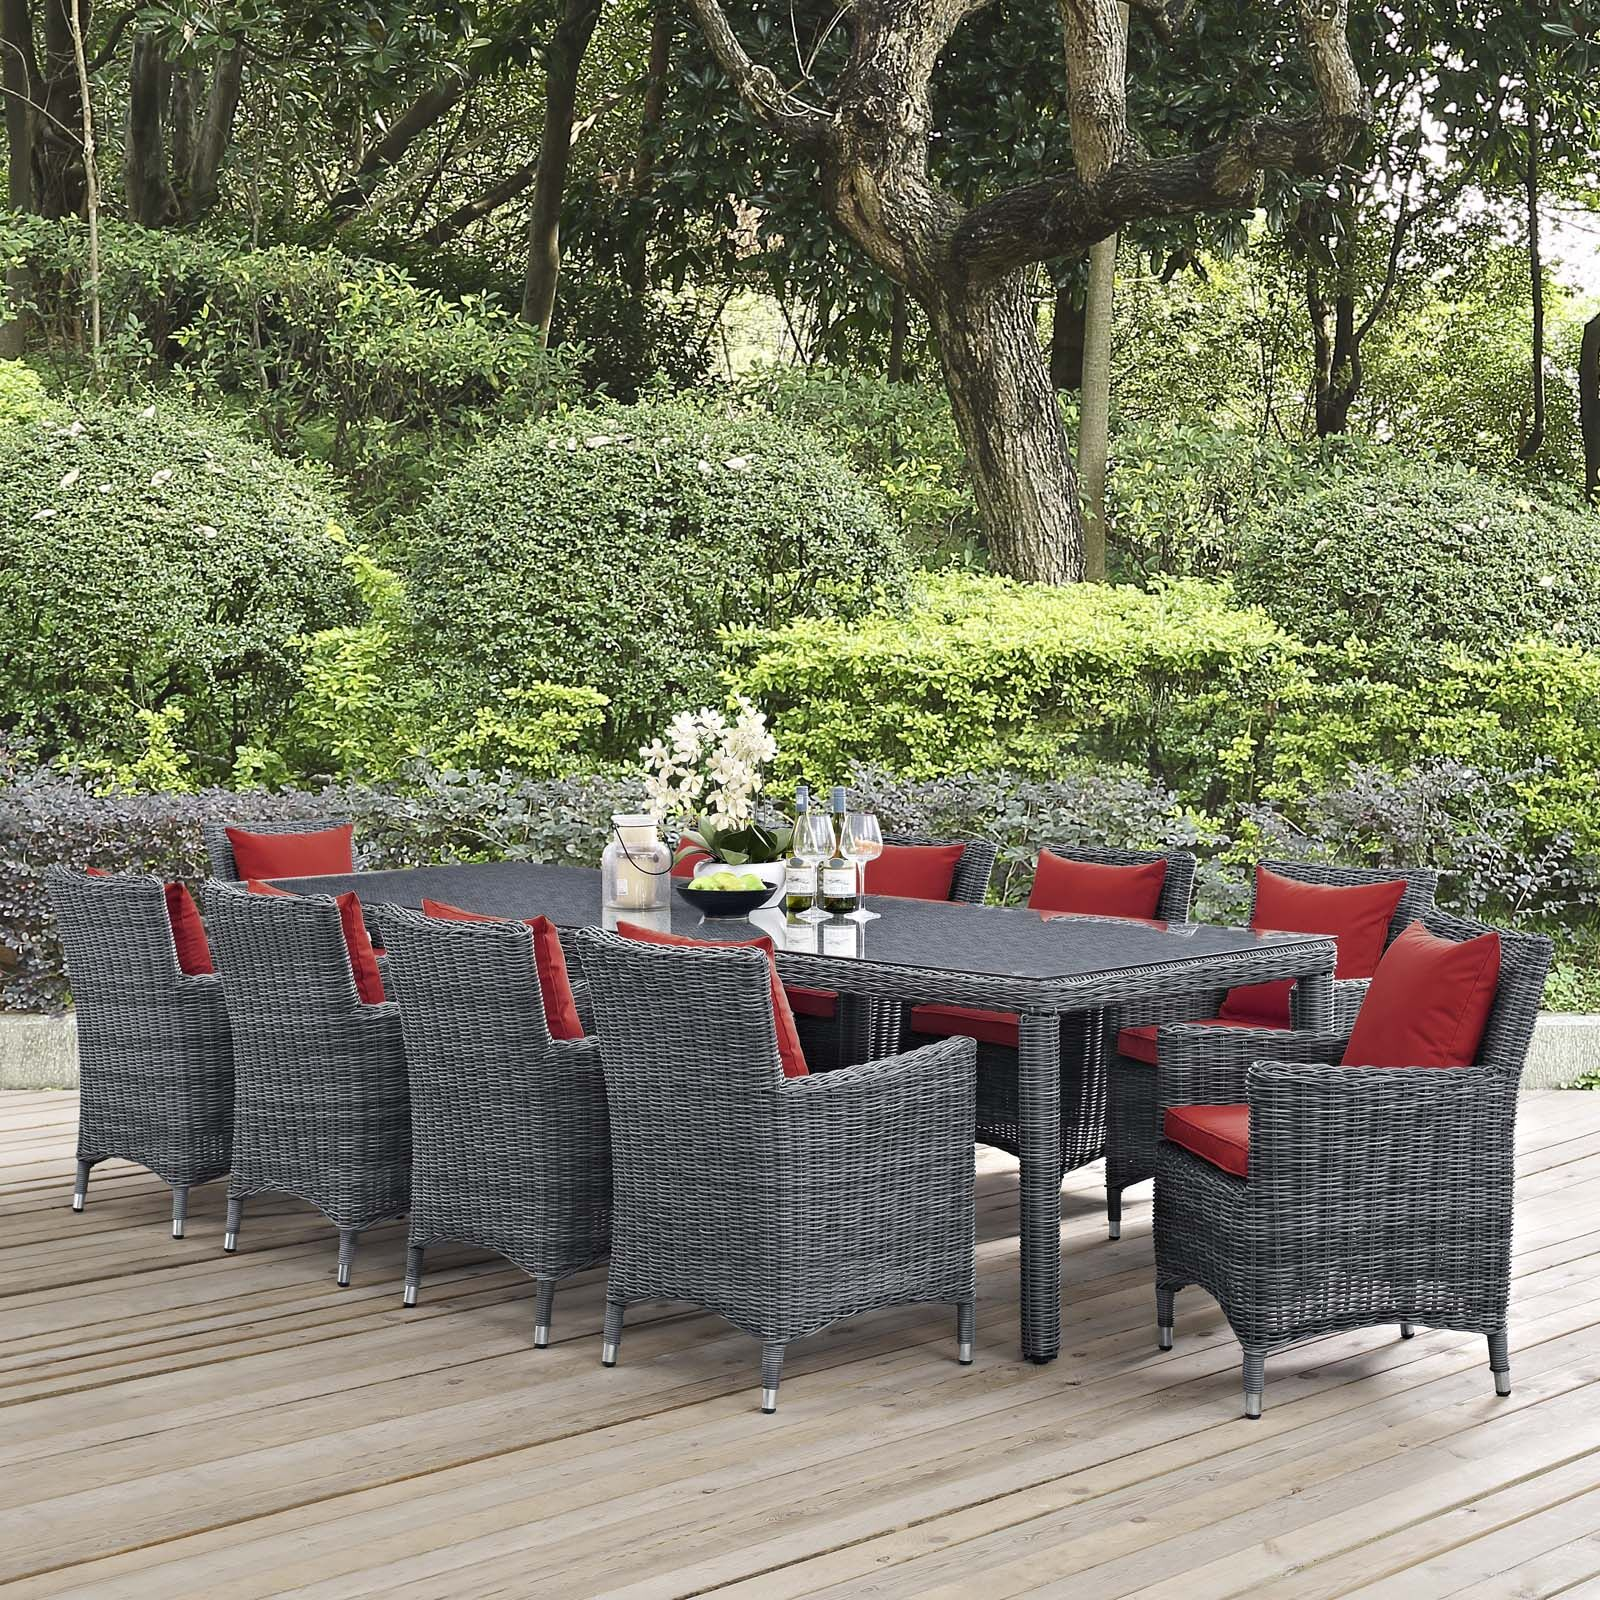 Alaia 11 Piece Rattan Sunbrella Dining Set with Cushions Cushion Color: Red